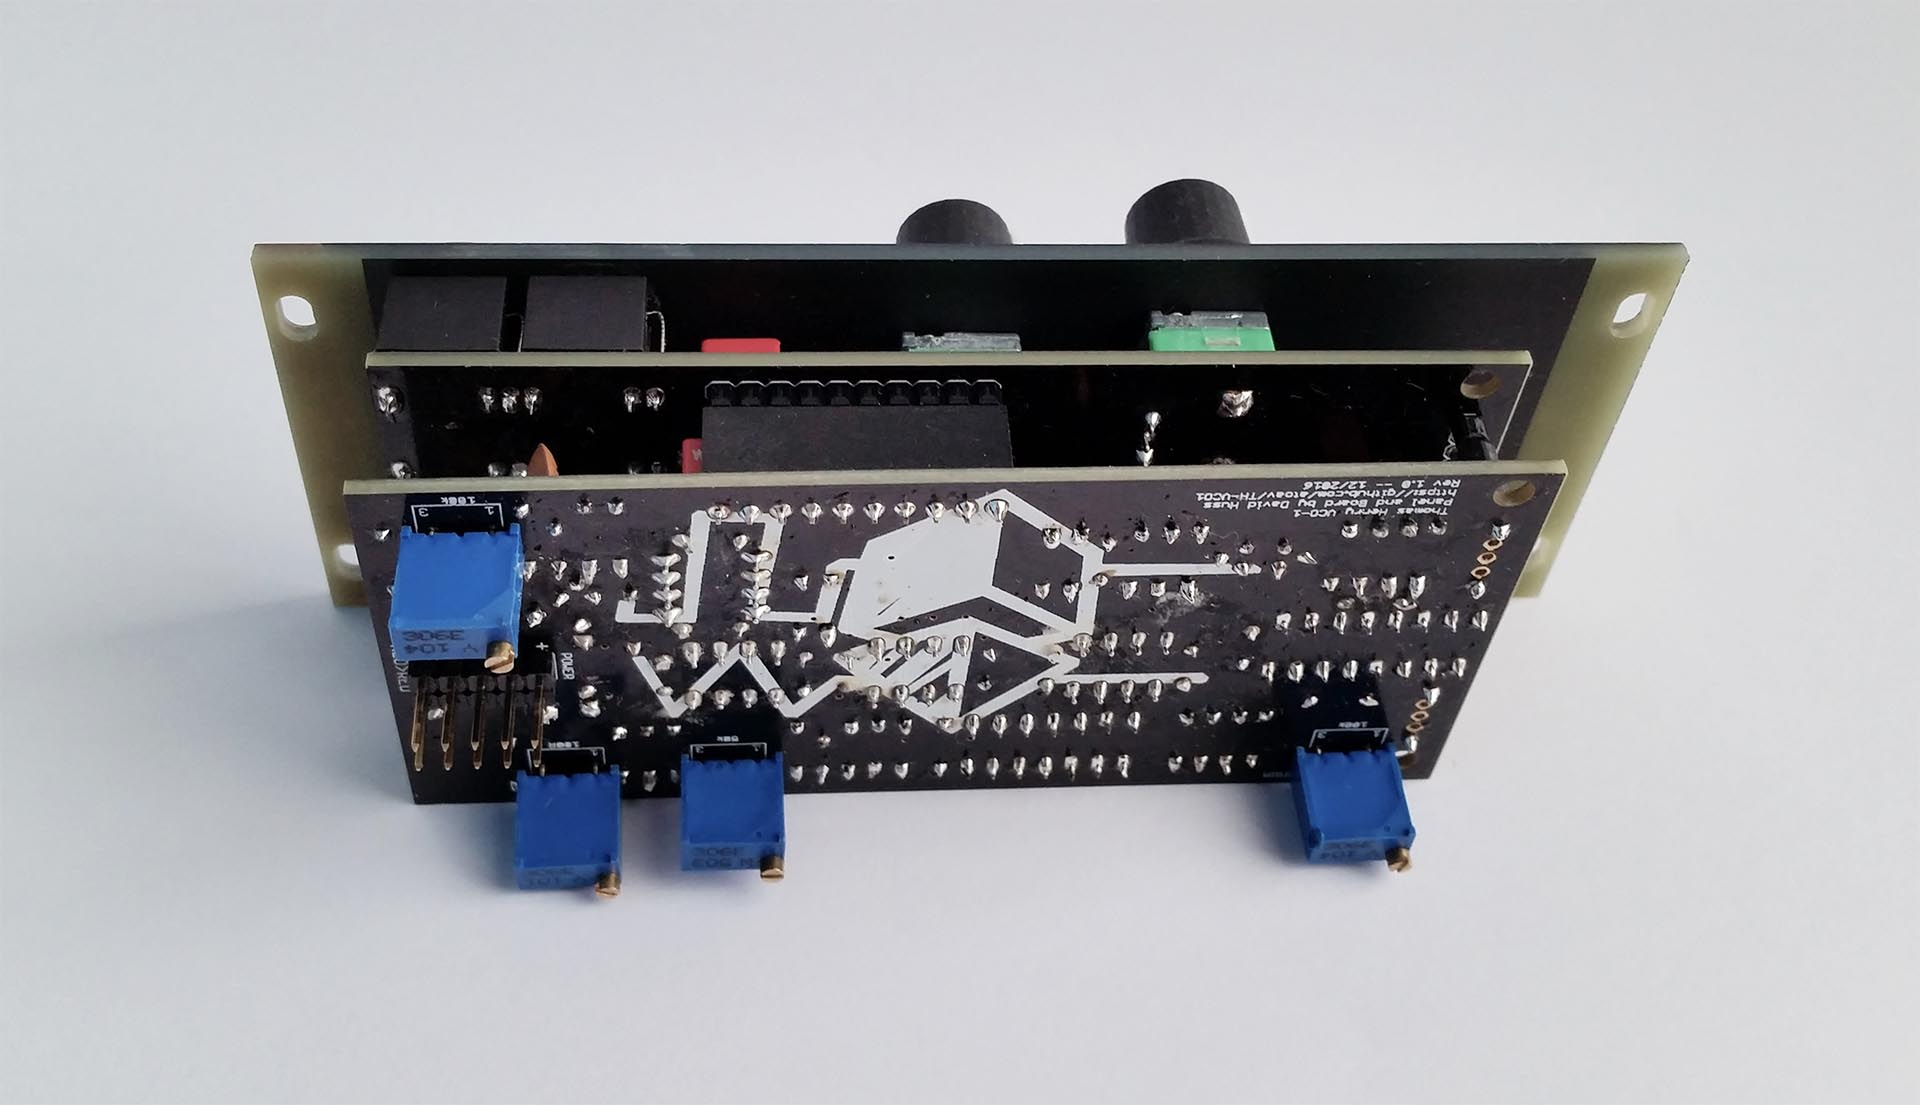 th-vco1/Pictures/th-vco-1_3.jpg